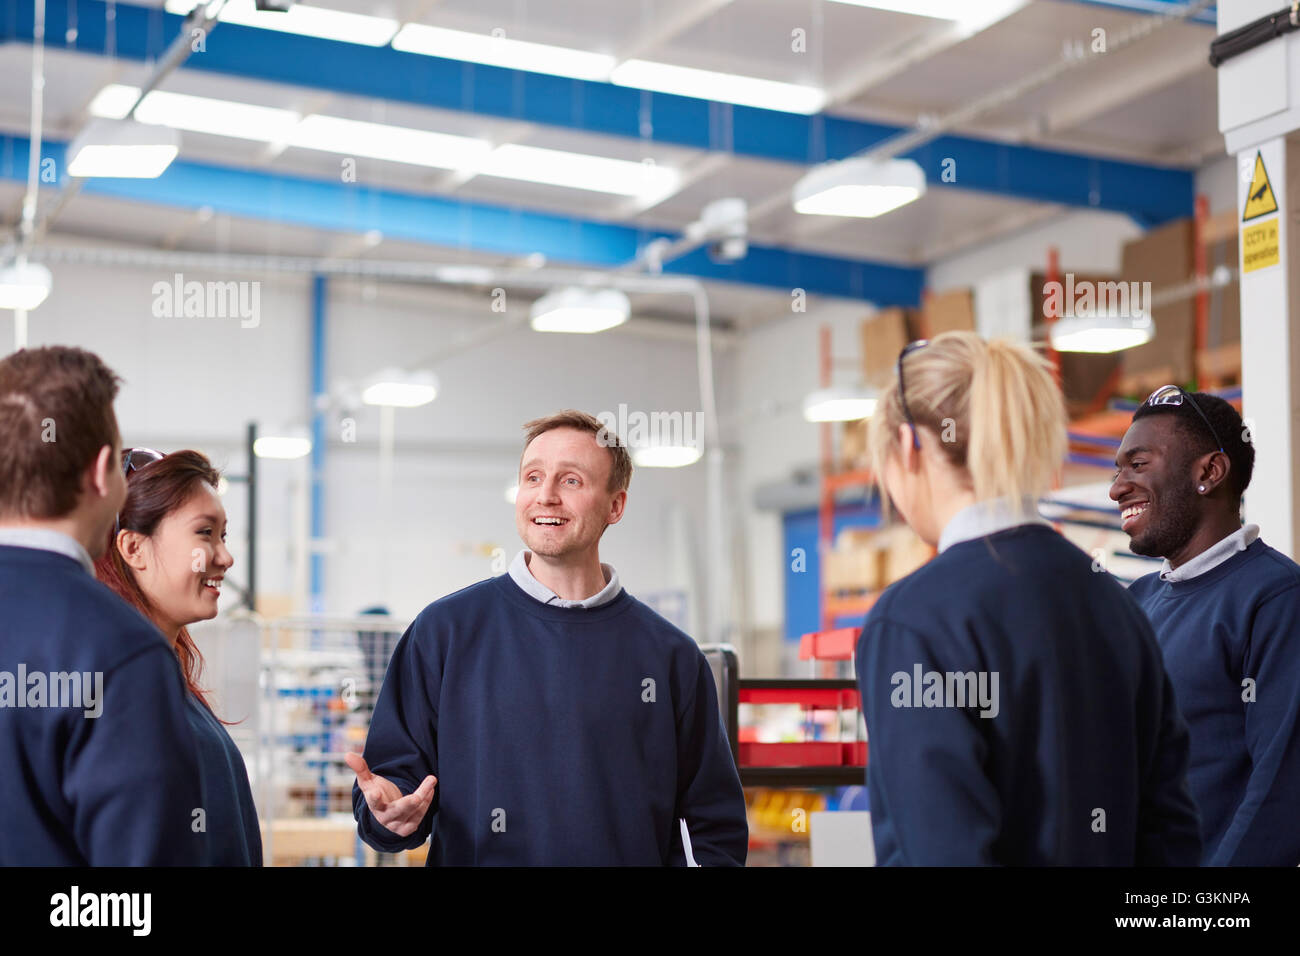 Manager explaining to team in manufacturing factory - Stock Image